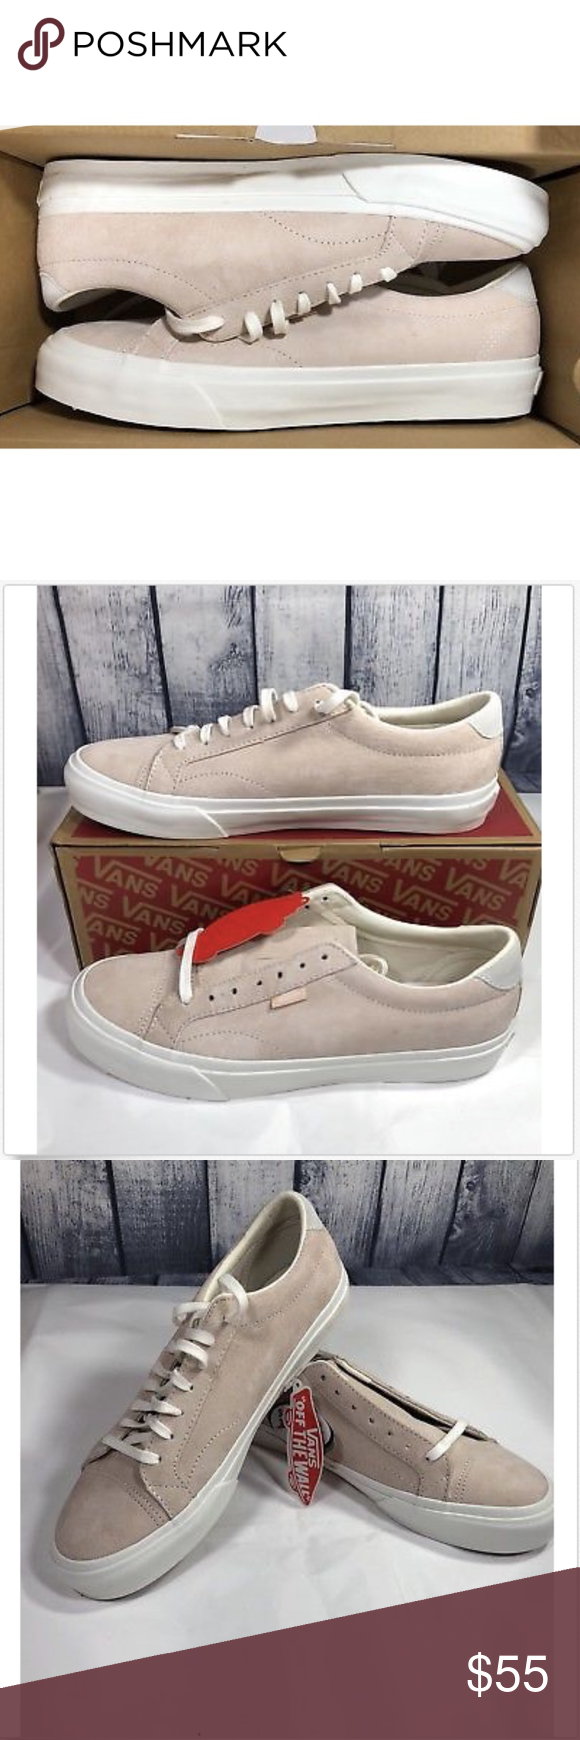 827b260cf82b Vans Court DX Pig Suede Silver Peony Shoes Vans Court DX Pig Suede Silver  Peony Shoes Size Men 8 Women 9.5 Brand New In Box Vans Shoes Athletic Shoes